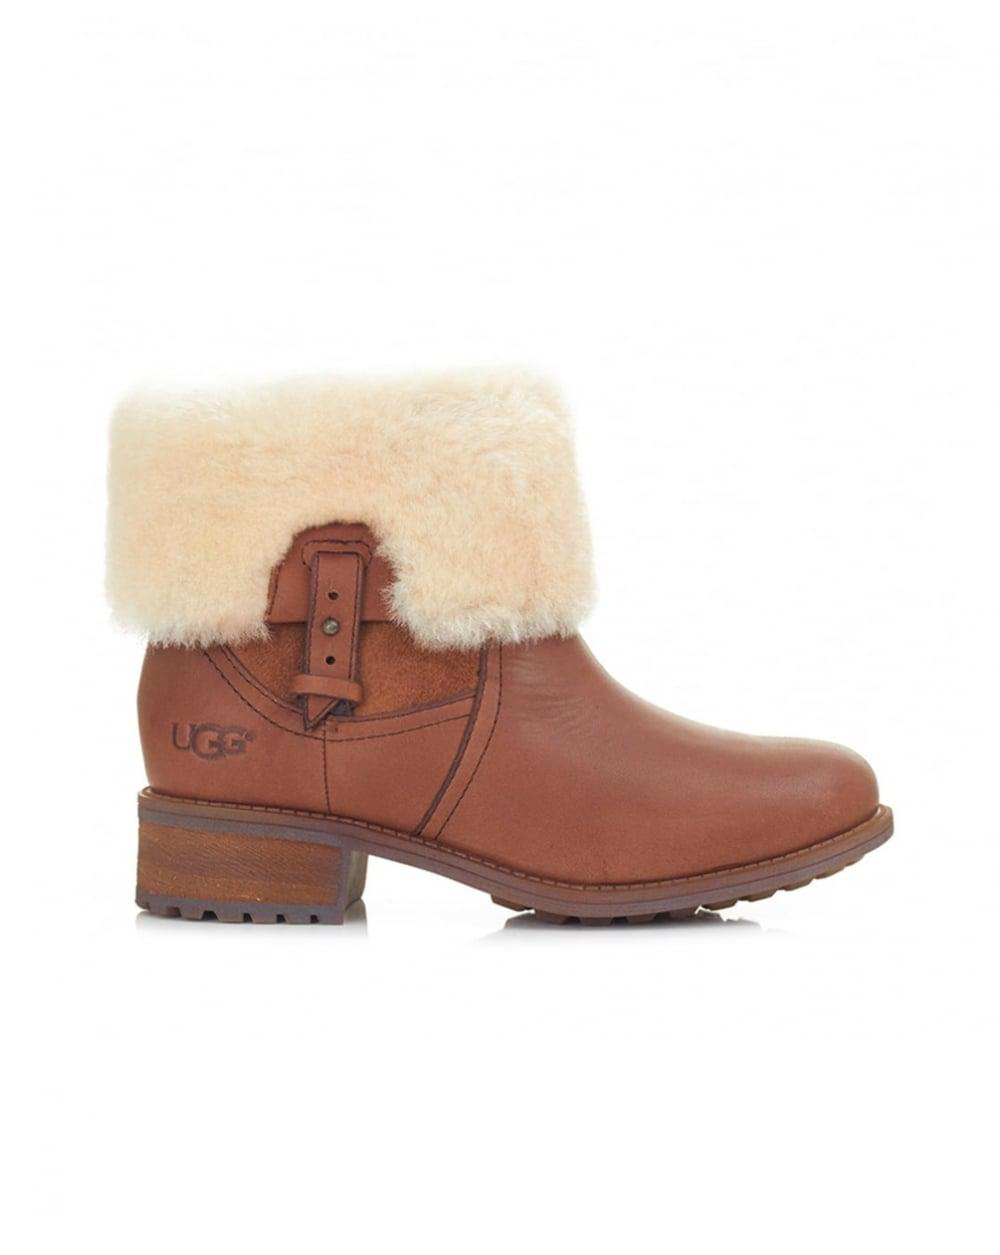 b648e8c7bb4 Ugg Brown Chyler Leather Fold Over Boots